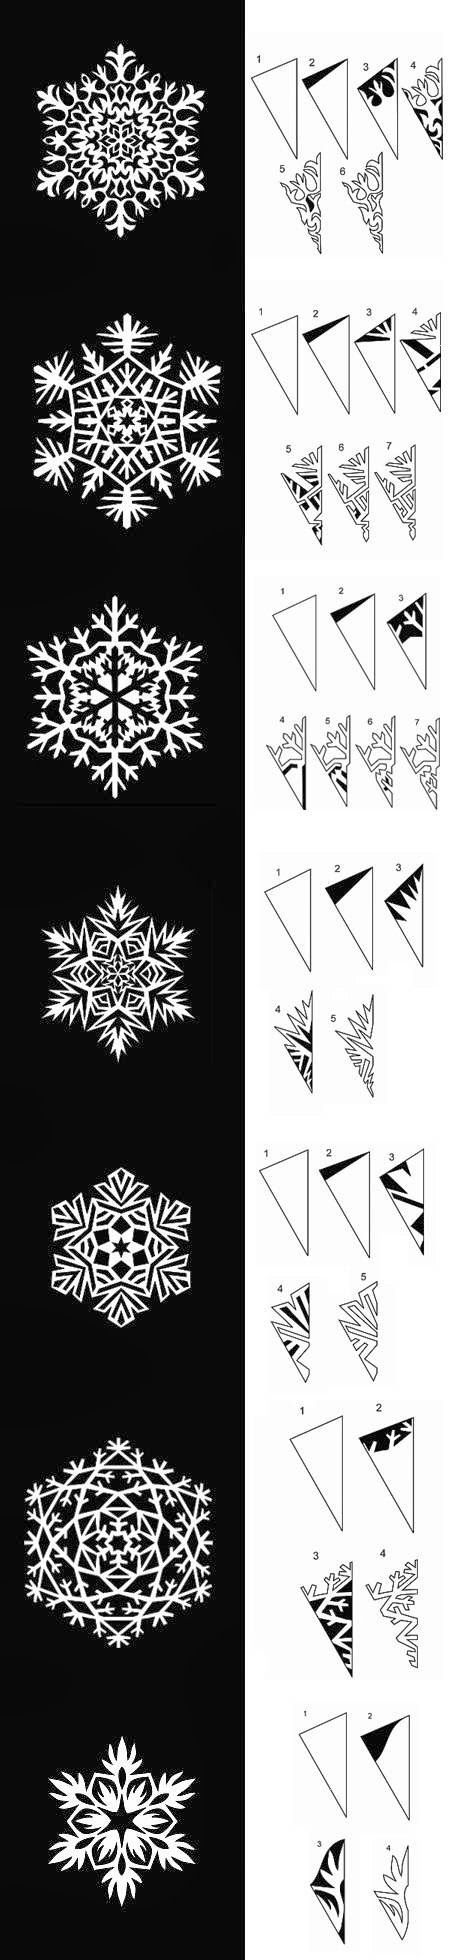 DIY : Paper Snowflakes Templates | DIY & Crafts Tutorials @Charlotte Willner Swanson SNOWFLAKES!!!!!!!!